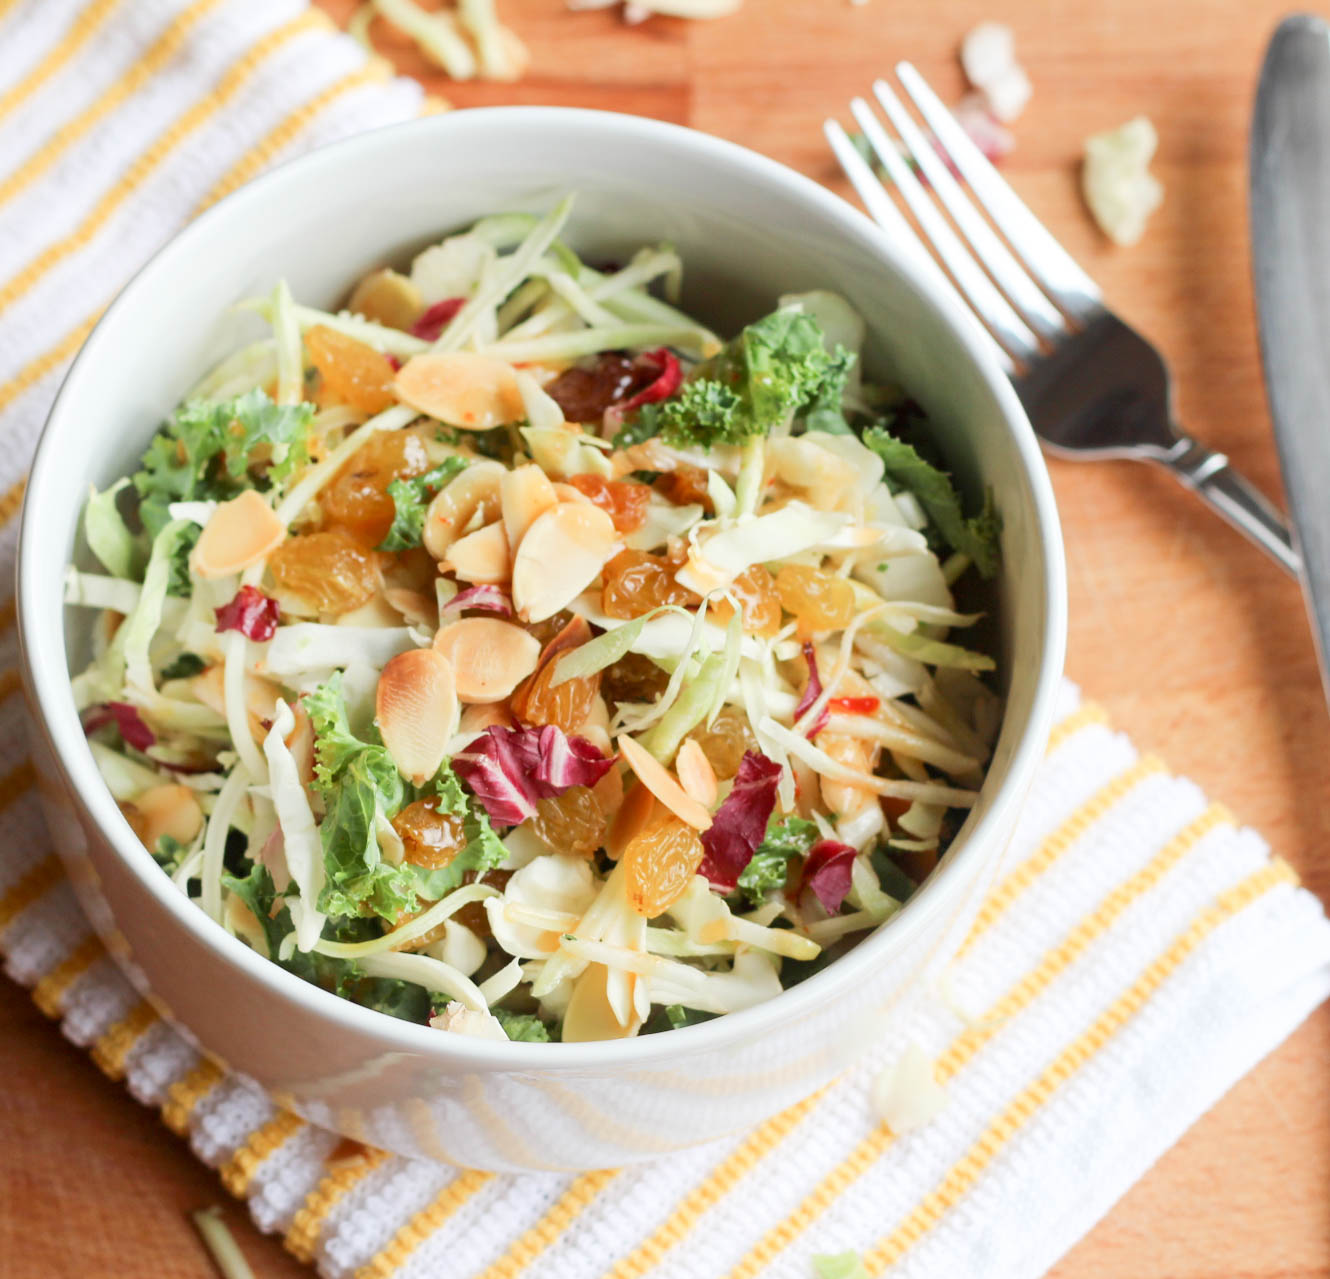 6 Tips For Dining Out - Healthy Salad